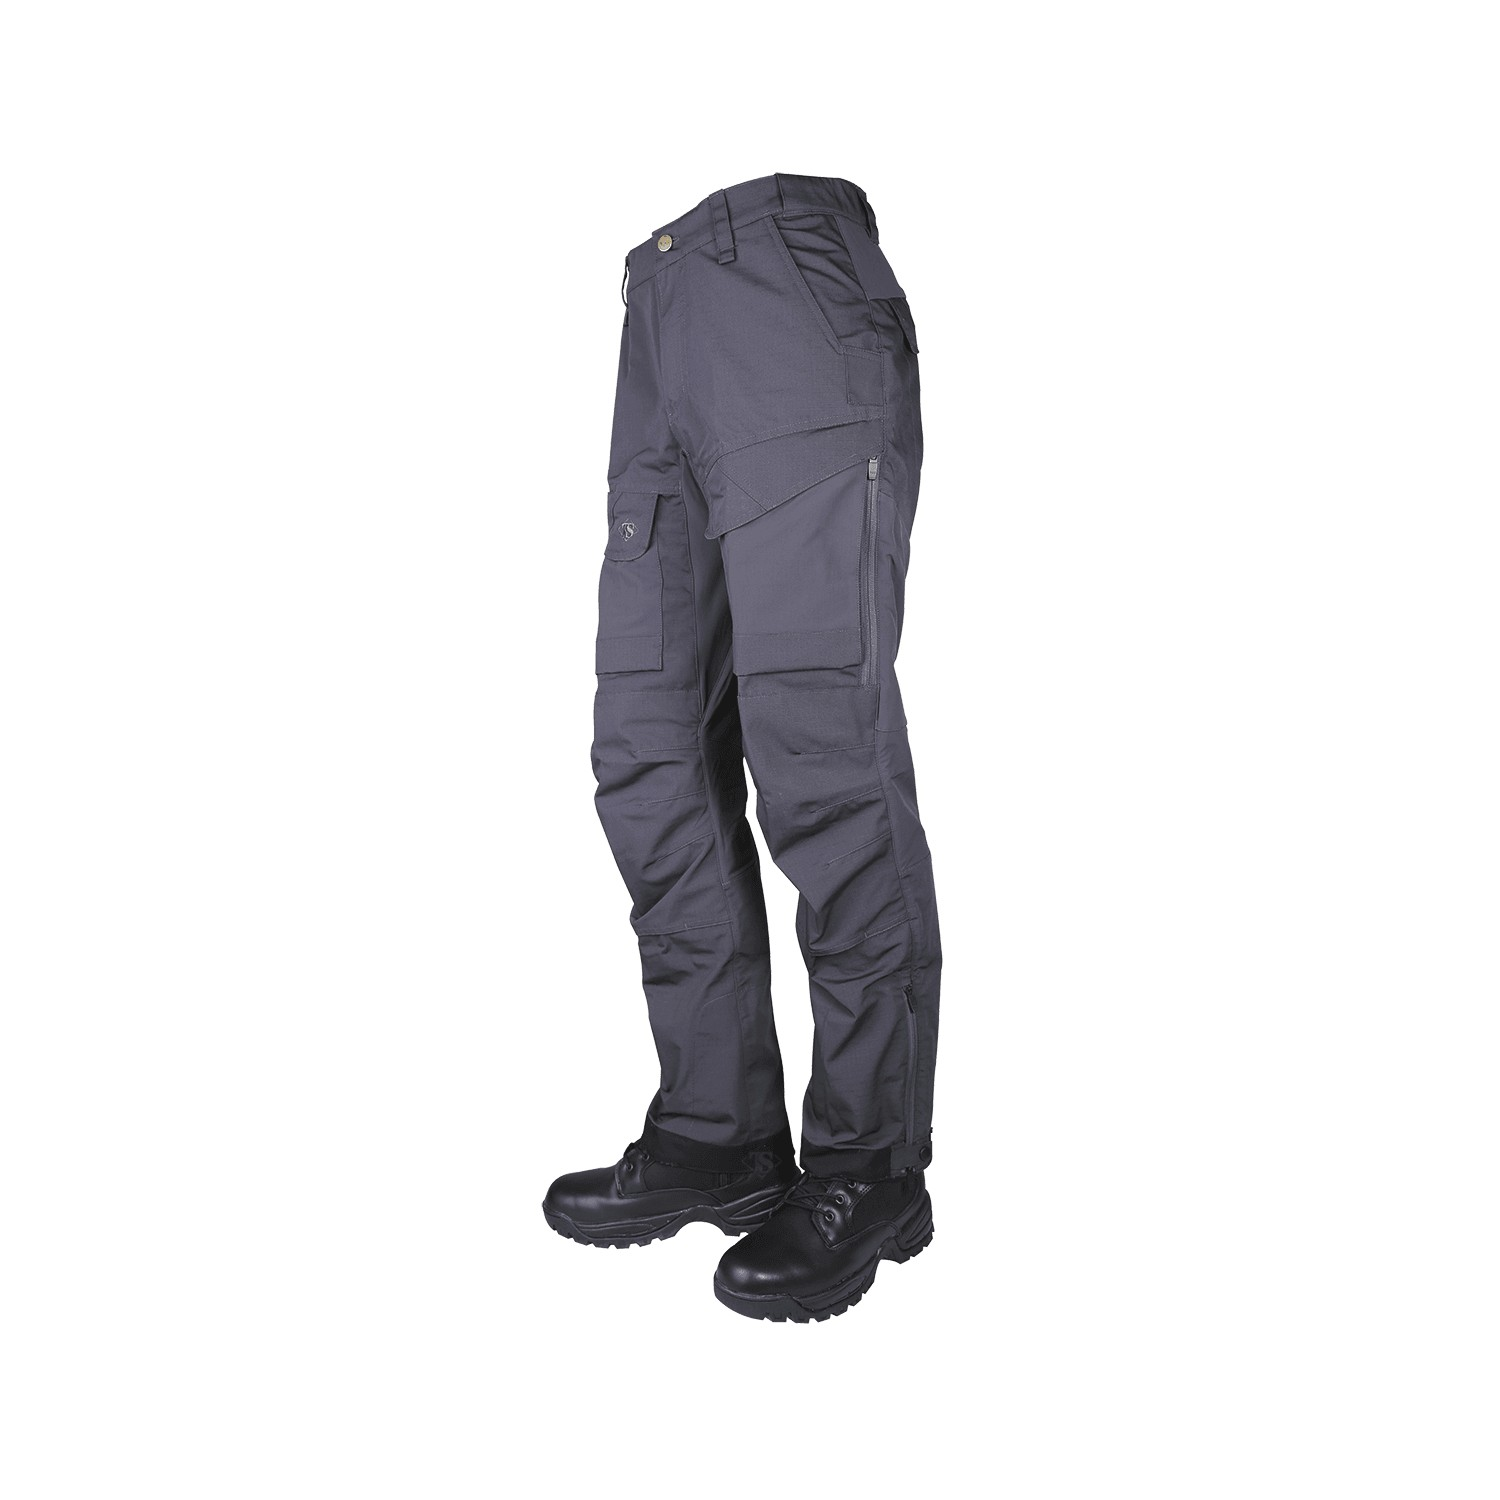 PANTALON XPEDITION , GRIS